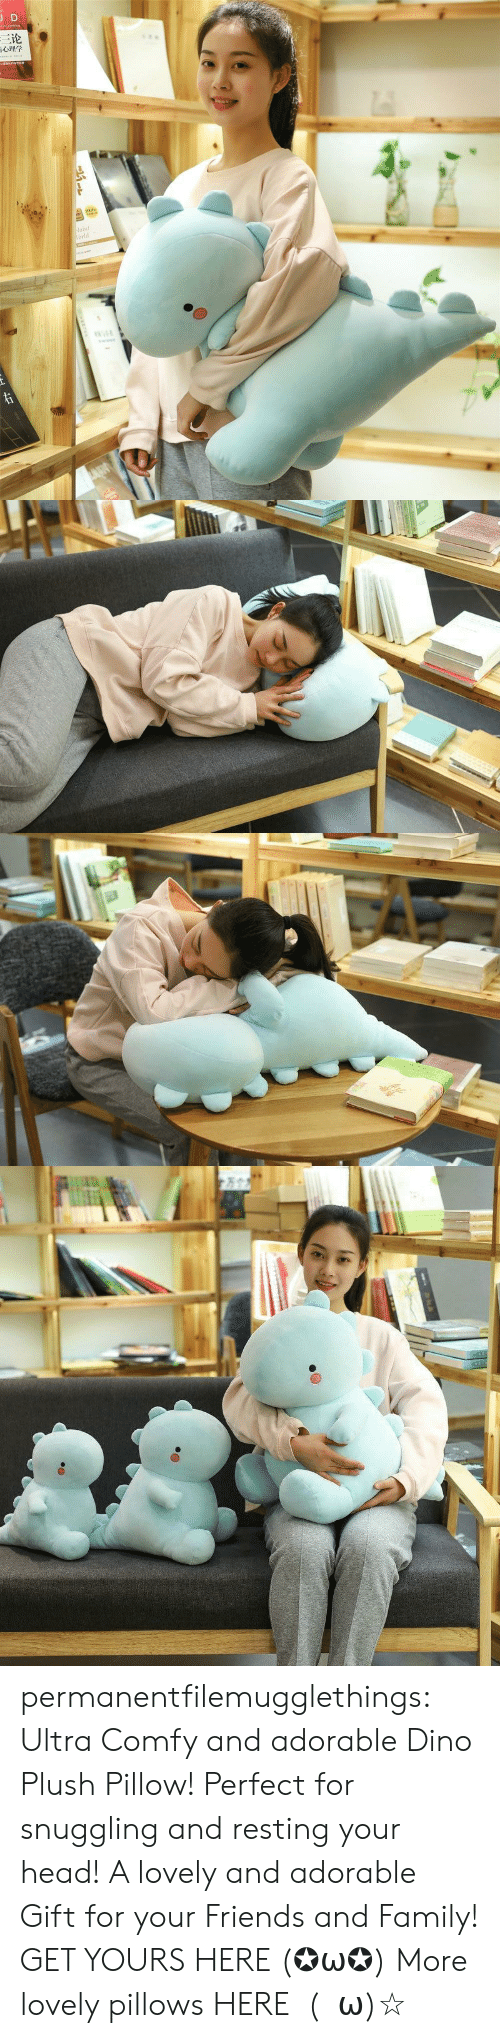 Resting: JD  三论  laint  orld  TDNAR  ww.e permanentfilemugglethings: Ultra Comfy and adorable Dino Plush Pillow! Perfect for snuggling and resting your head! A lovely and adorable Gift for your Friends and Family! GET YOURS HERE (✪ω✪) More lovely pillows HERE  (・ω)☆